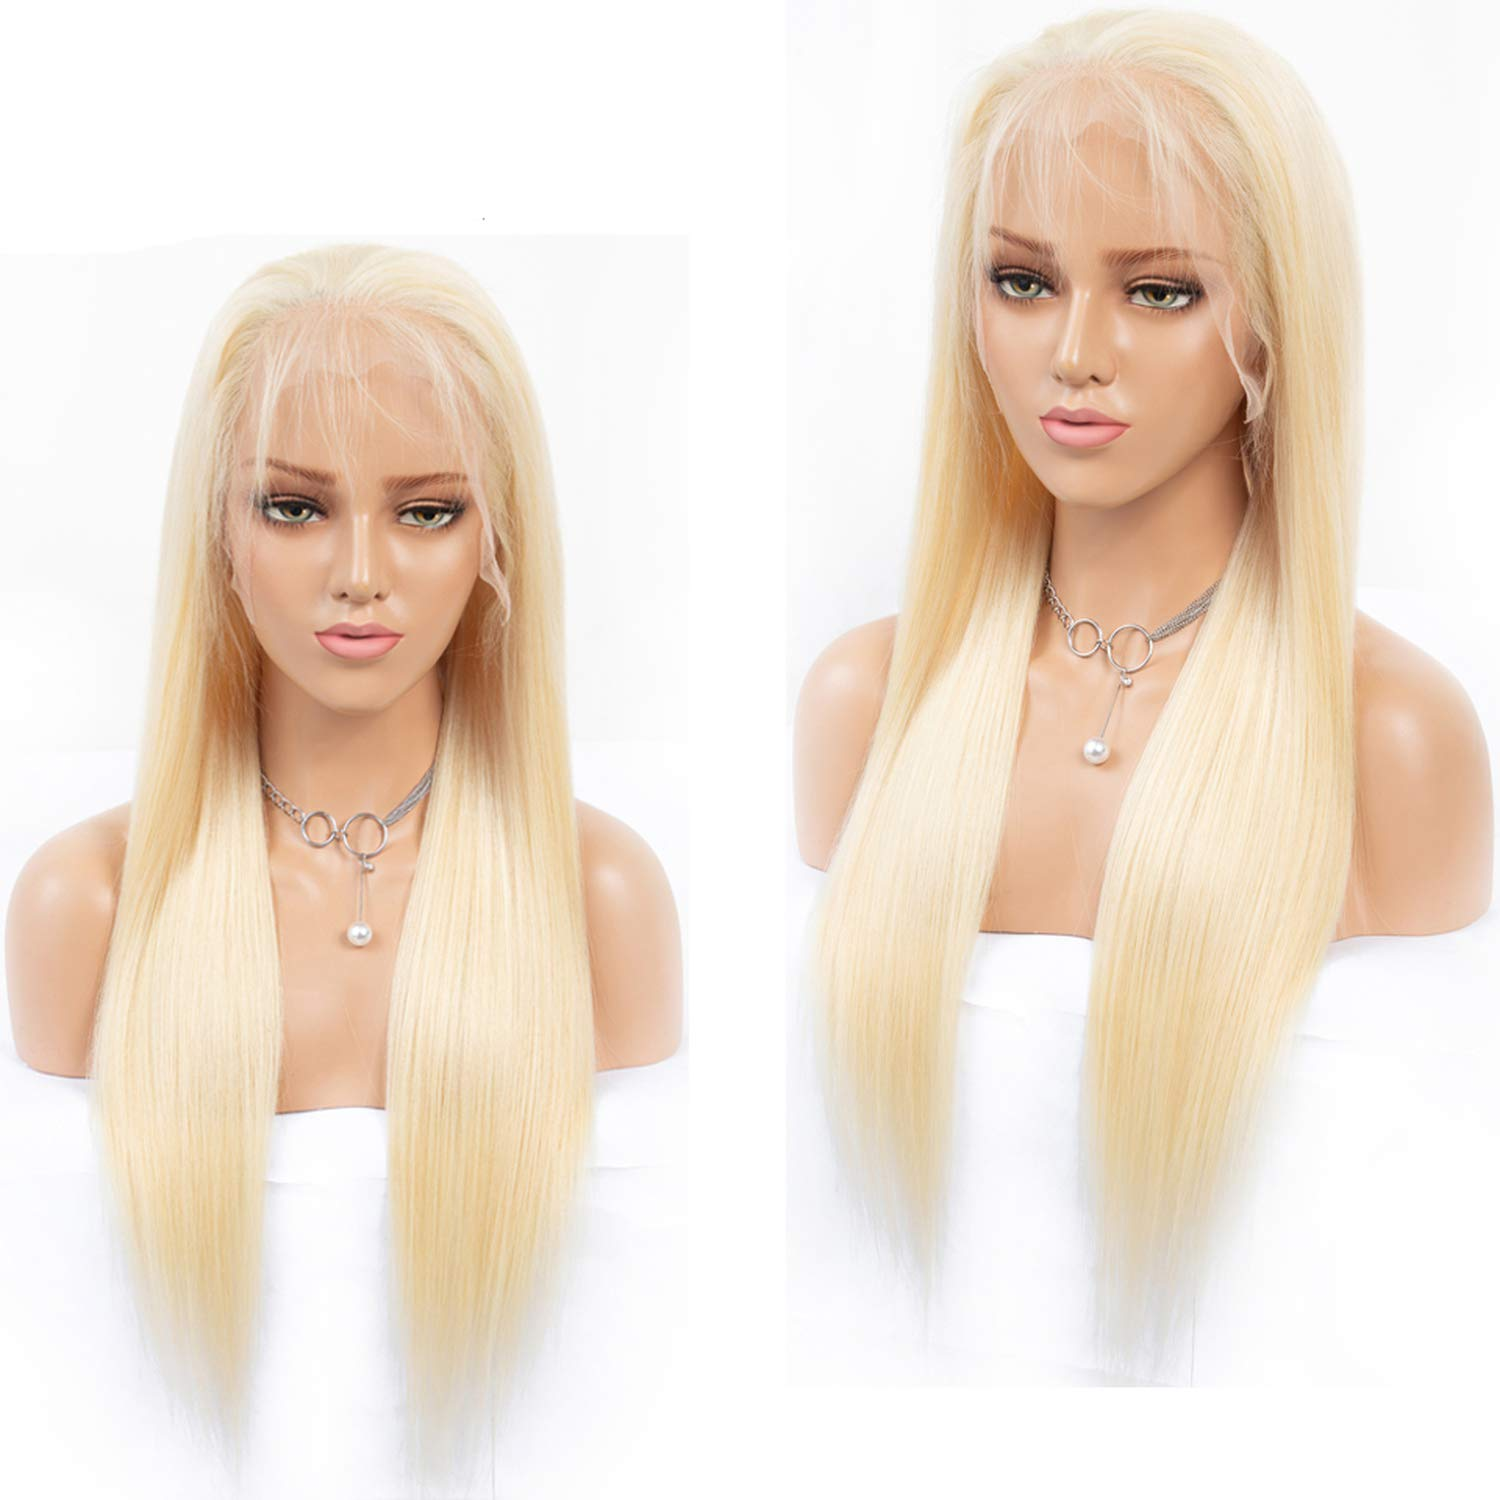 #613 Blonde Silk Base Wig With Transparent Lace Pre Plucked Straight Brazilian Full Lace Front Human Hair Wigs For Women,18inches,Lace Front Wig 61UZqaJk81L._SL1500_